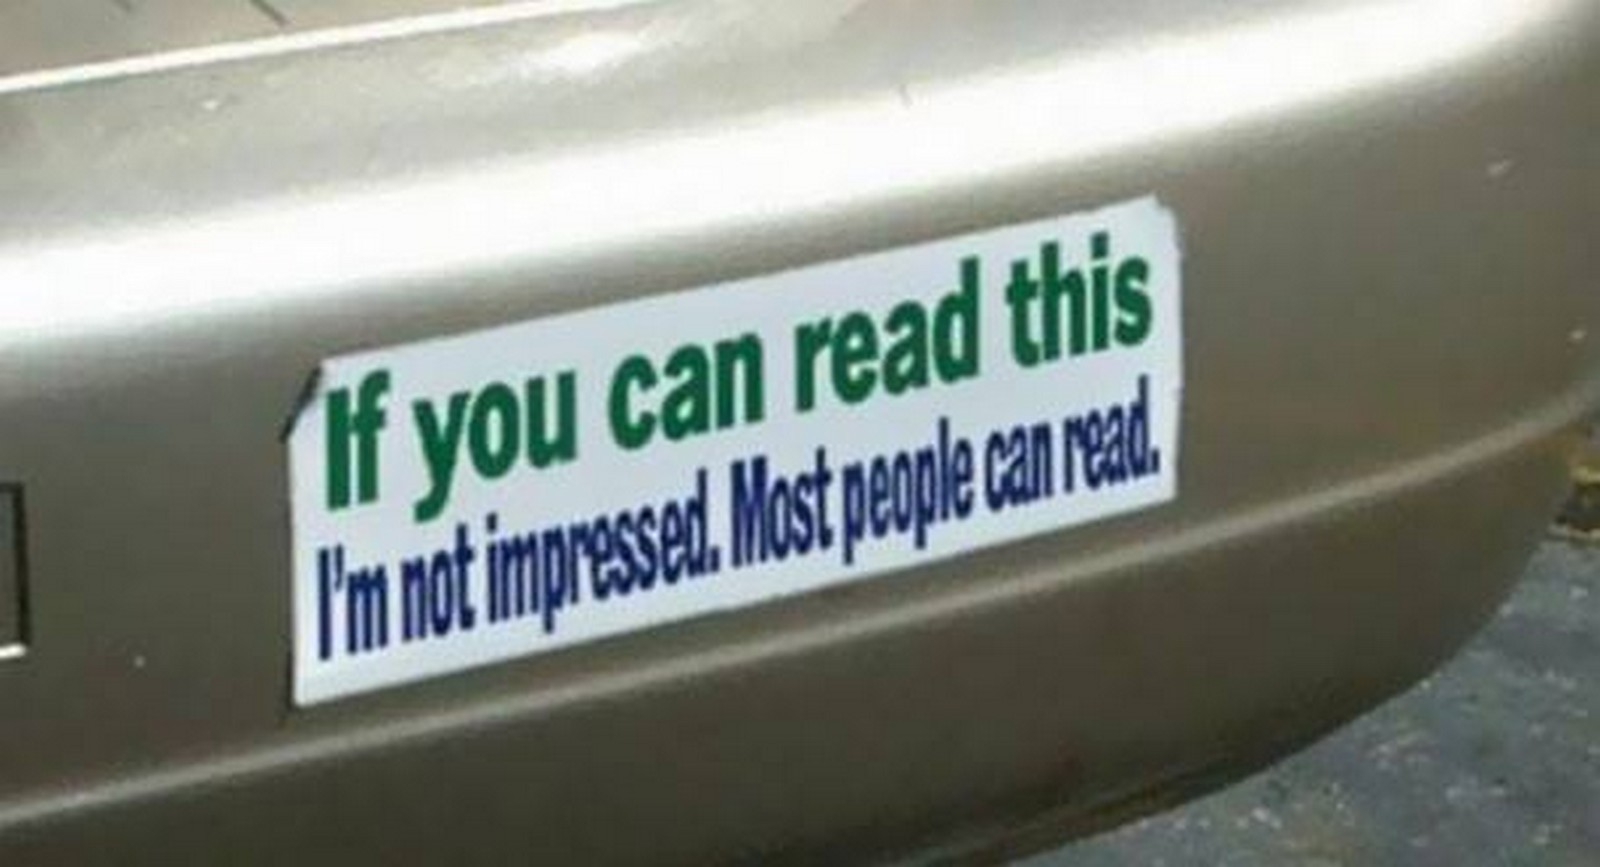 27 Funny Bumper Stickers - I see what you did there!